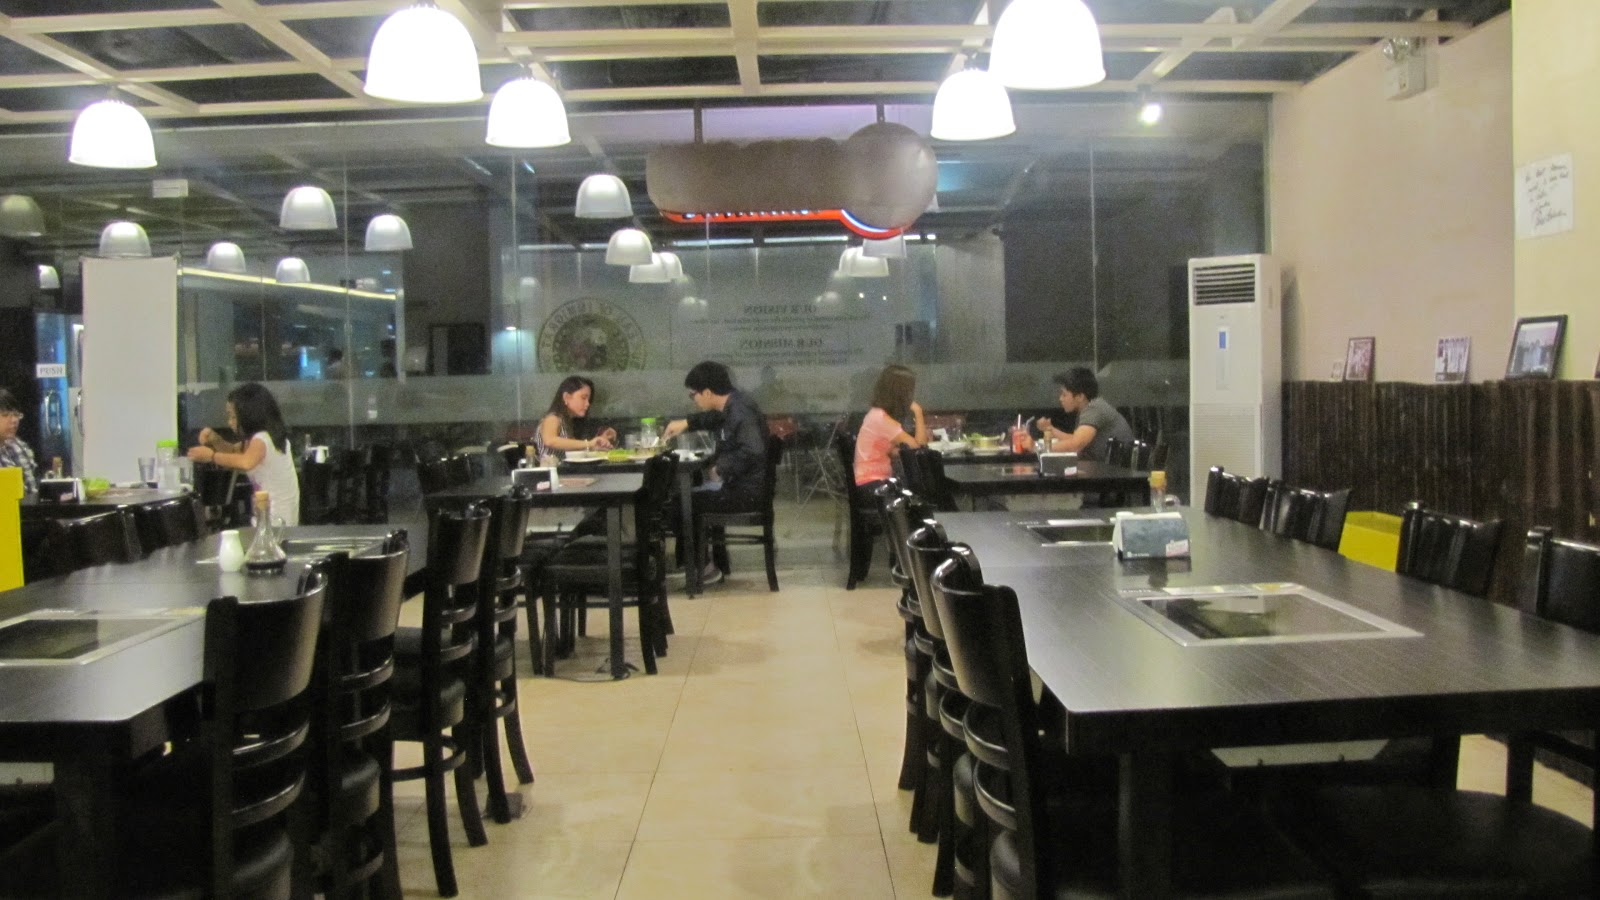 FTW! Blog, Gue Gue Yakiniku, J Centre Mall, #032eatdrink, J Centre Mall